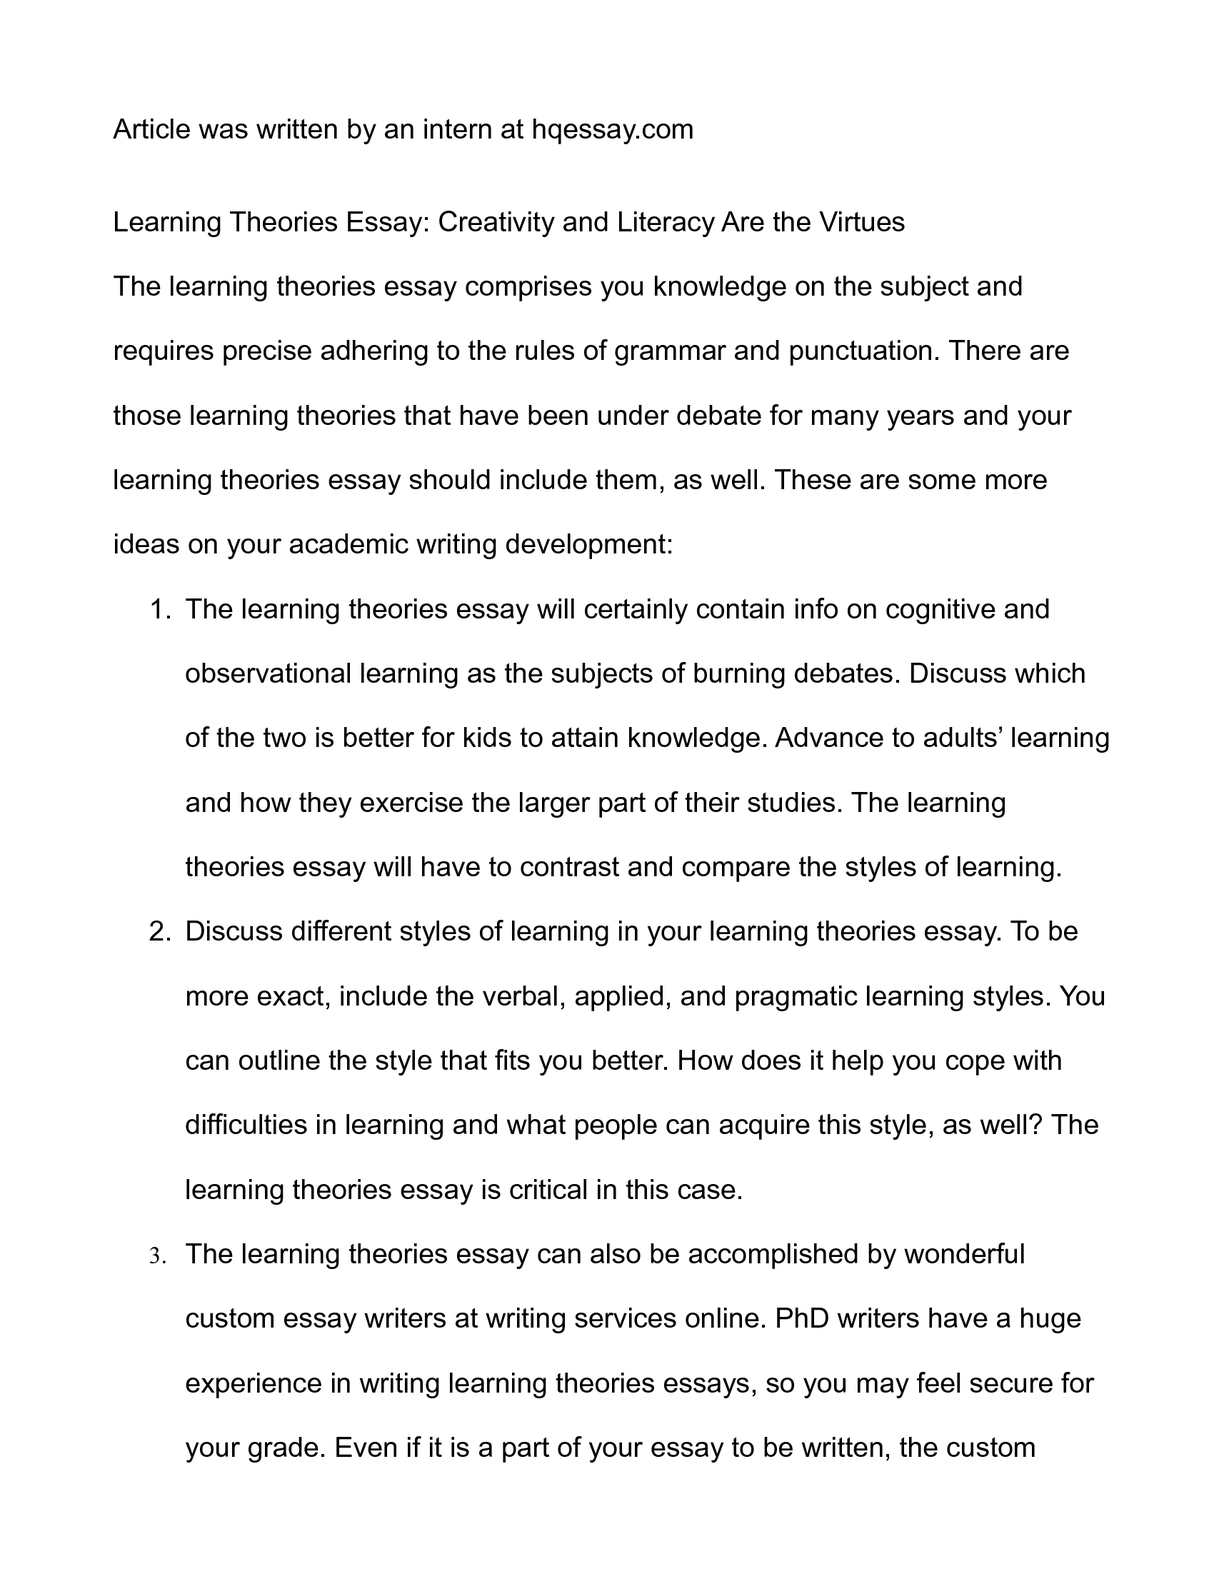 High School Reflective Essay Examples Calamo  Learning Theories Essay Creativity And Literacy Are The Virtues Reflective Essay Thesis also How To Write Essay Proposal Calamo  Learning Theories Essay Creativity And Literacy Are The  What Is A Thesis Statement For An Essay